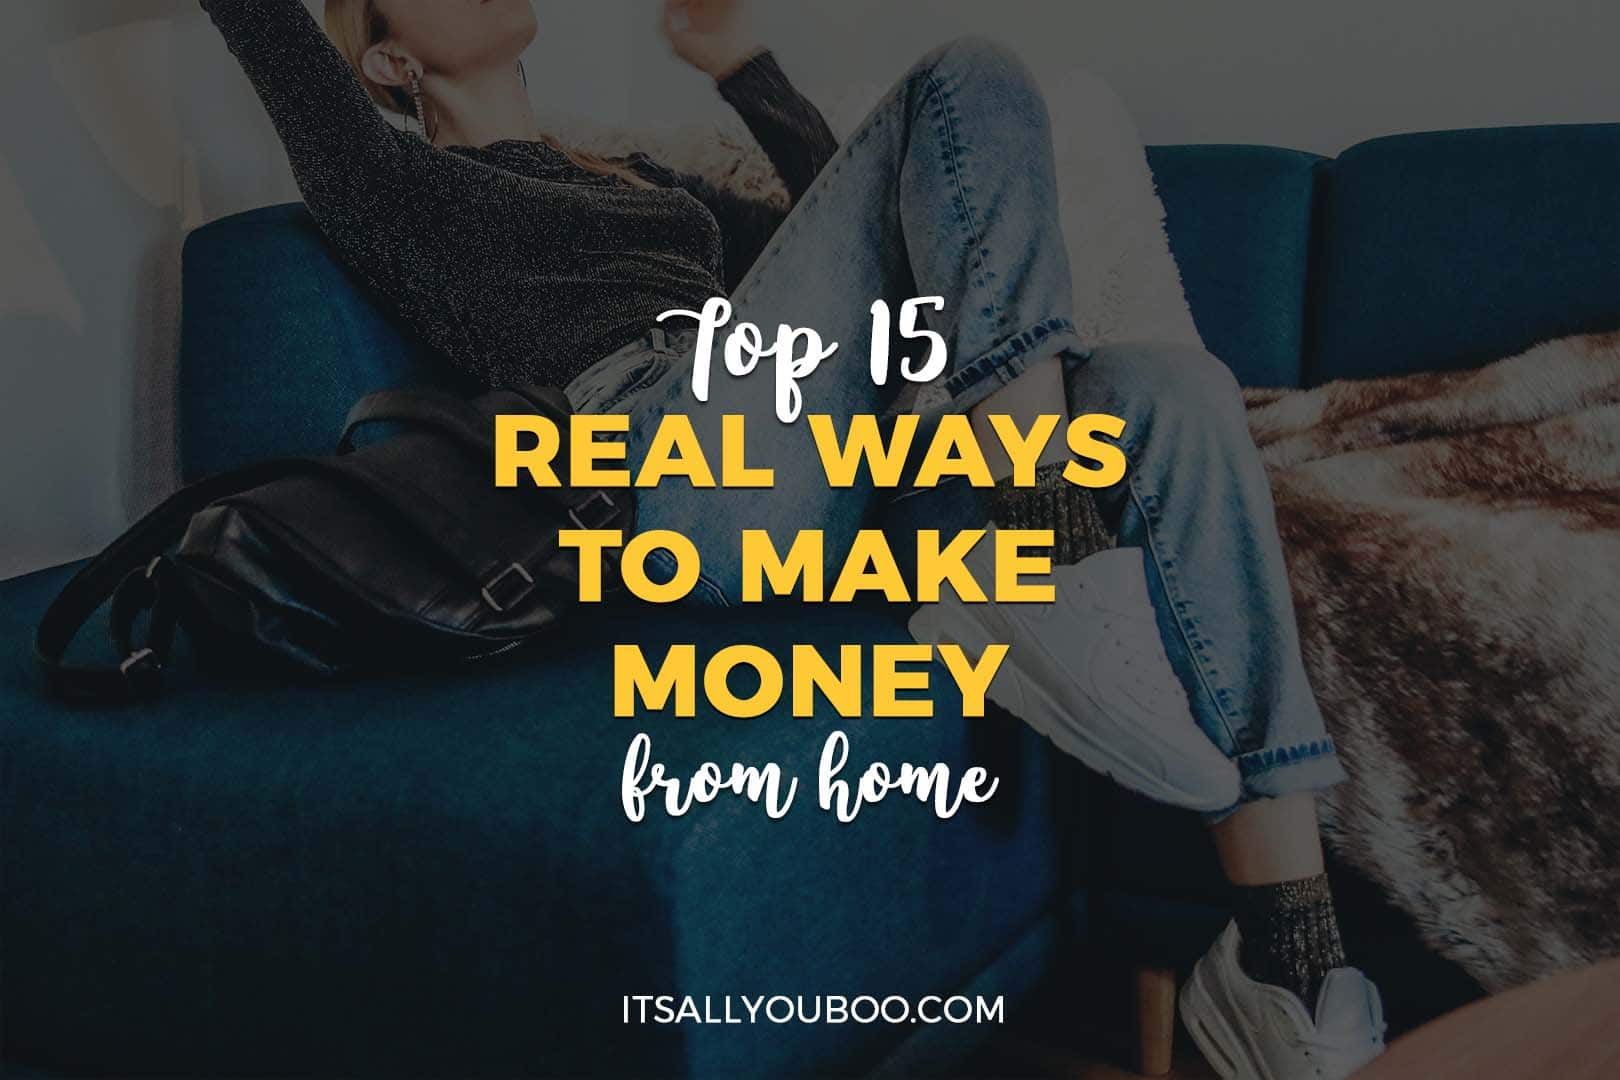 Top 15 Real Ways to Make Money at Home